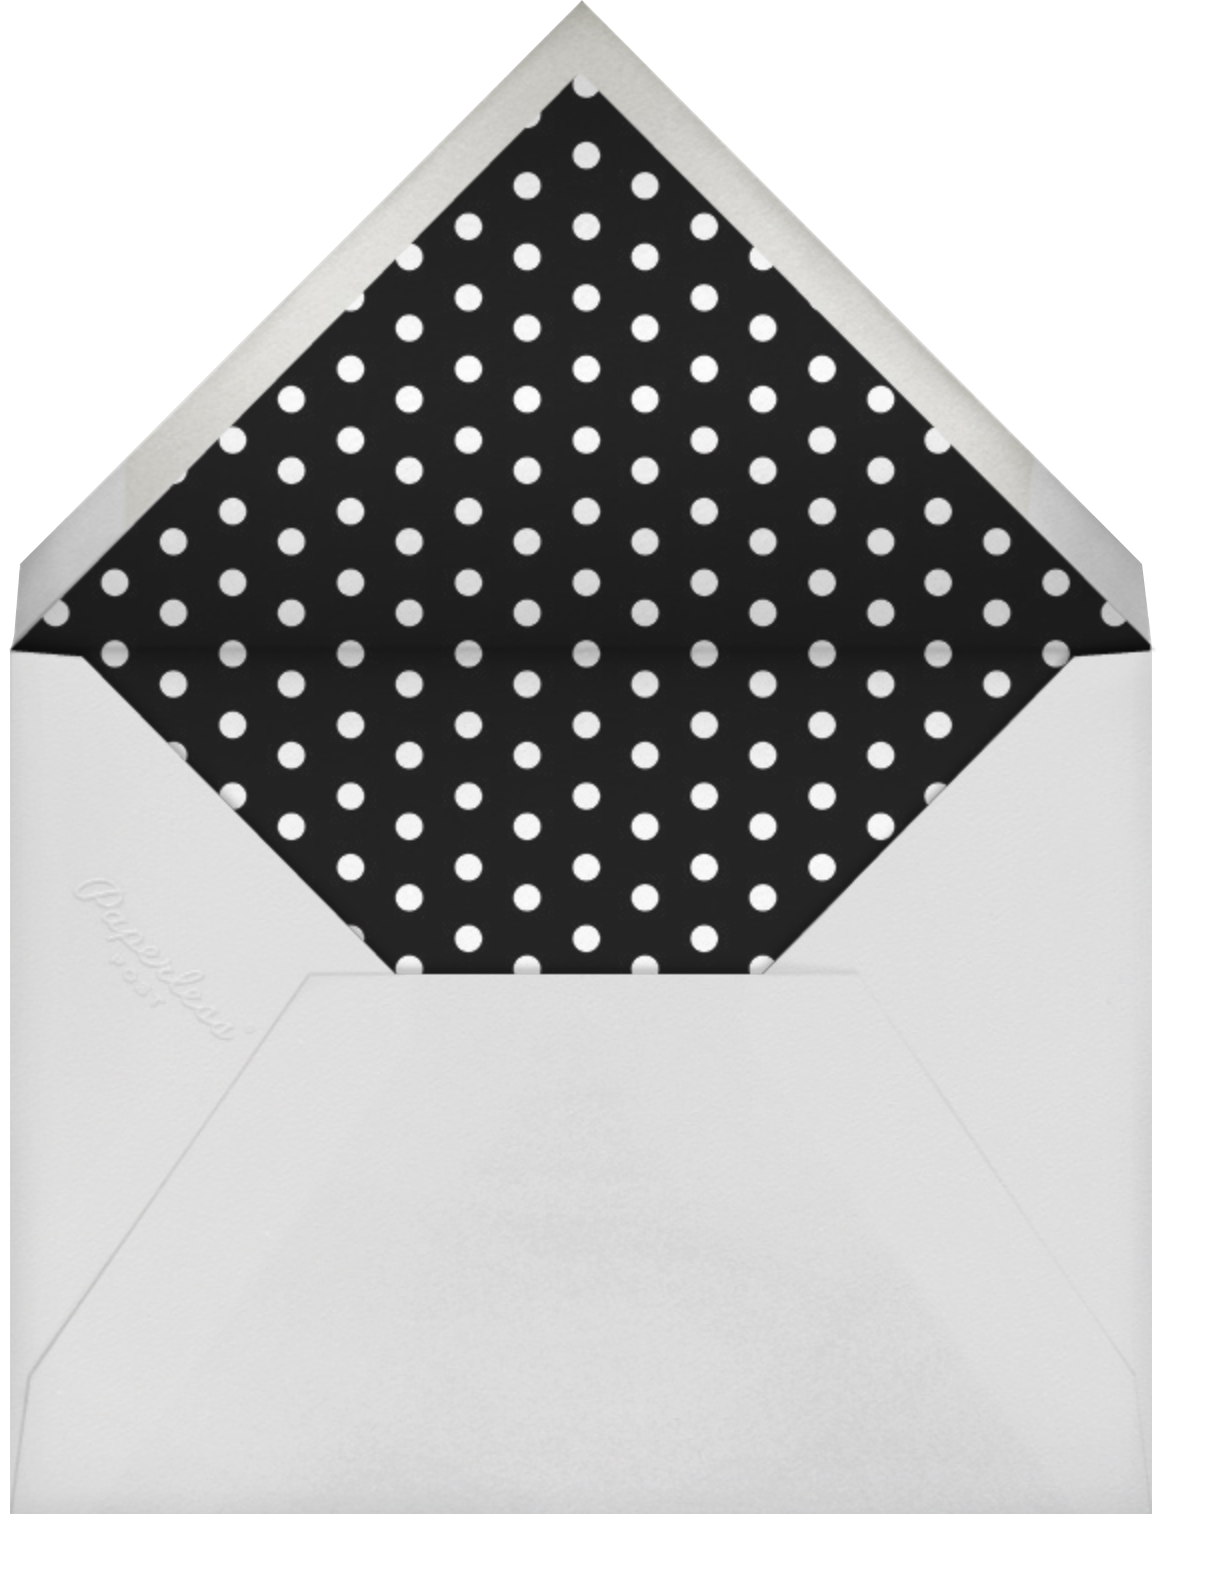 Queen for a Day - Medium - Rifle Paper Co. - Envelope